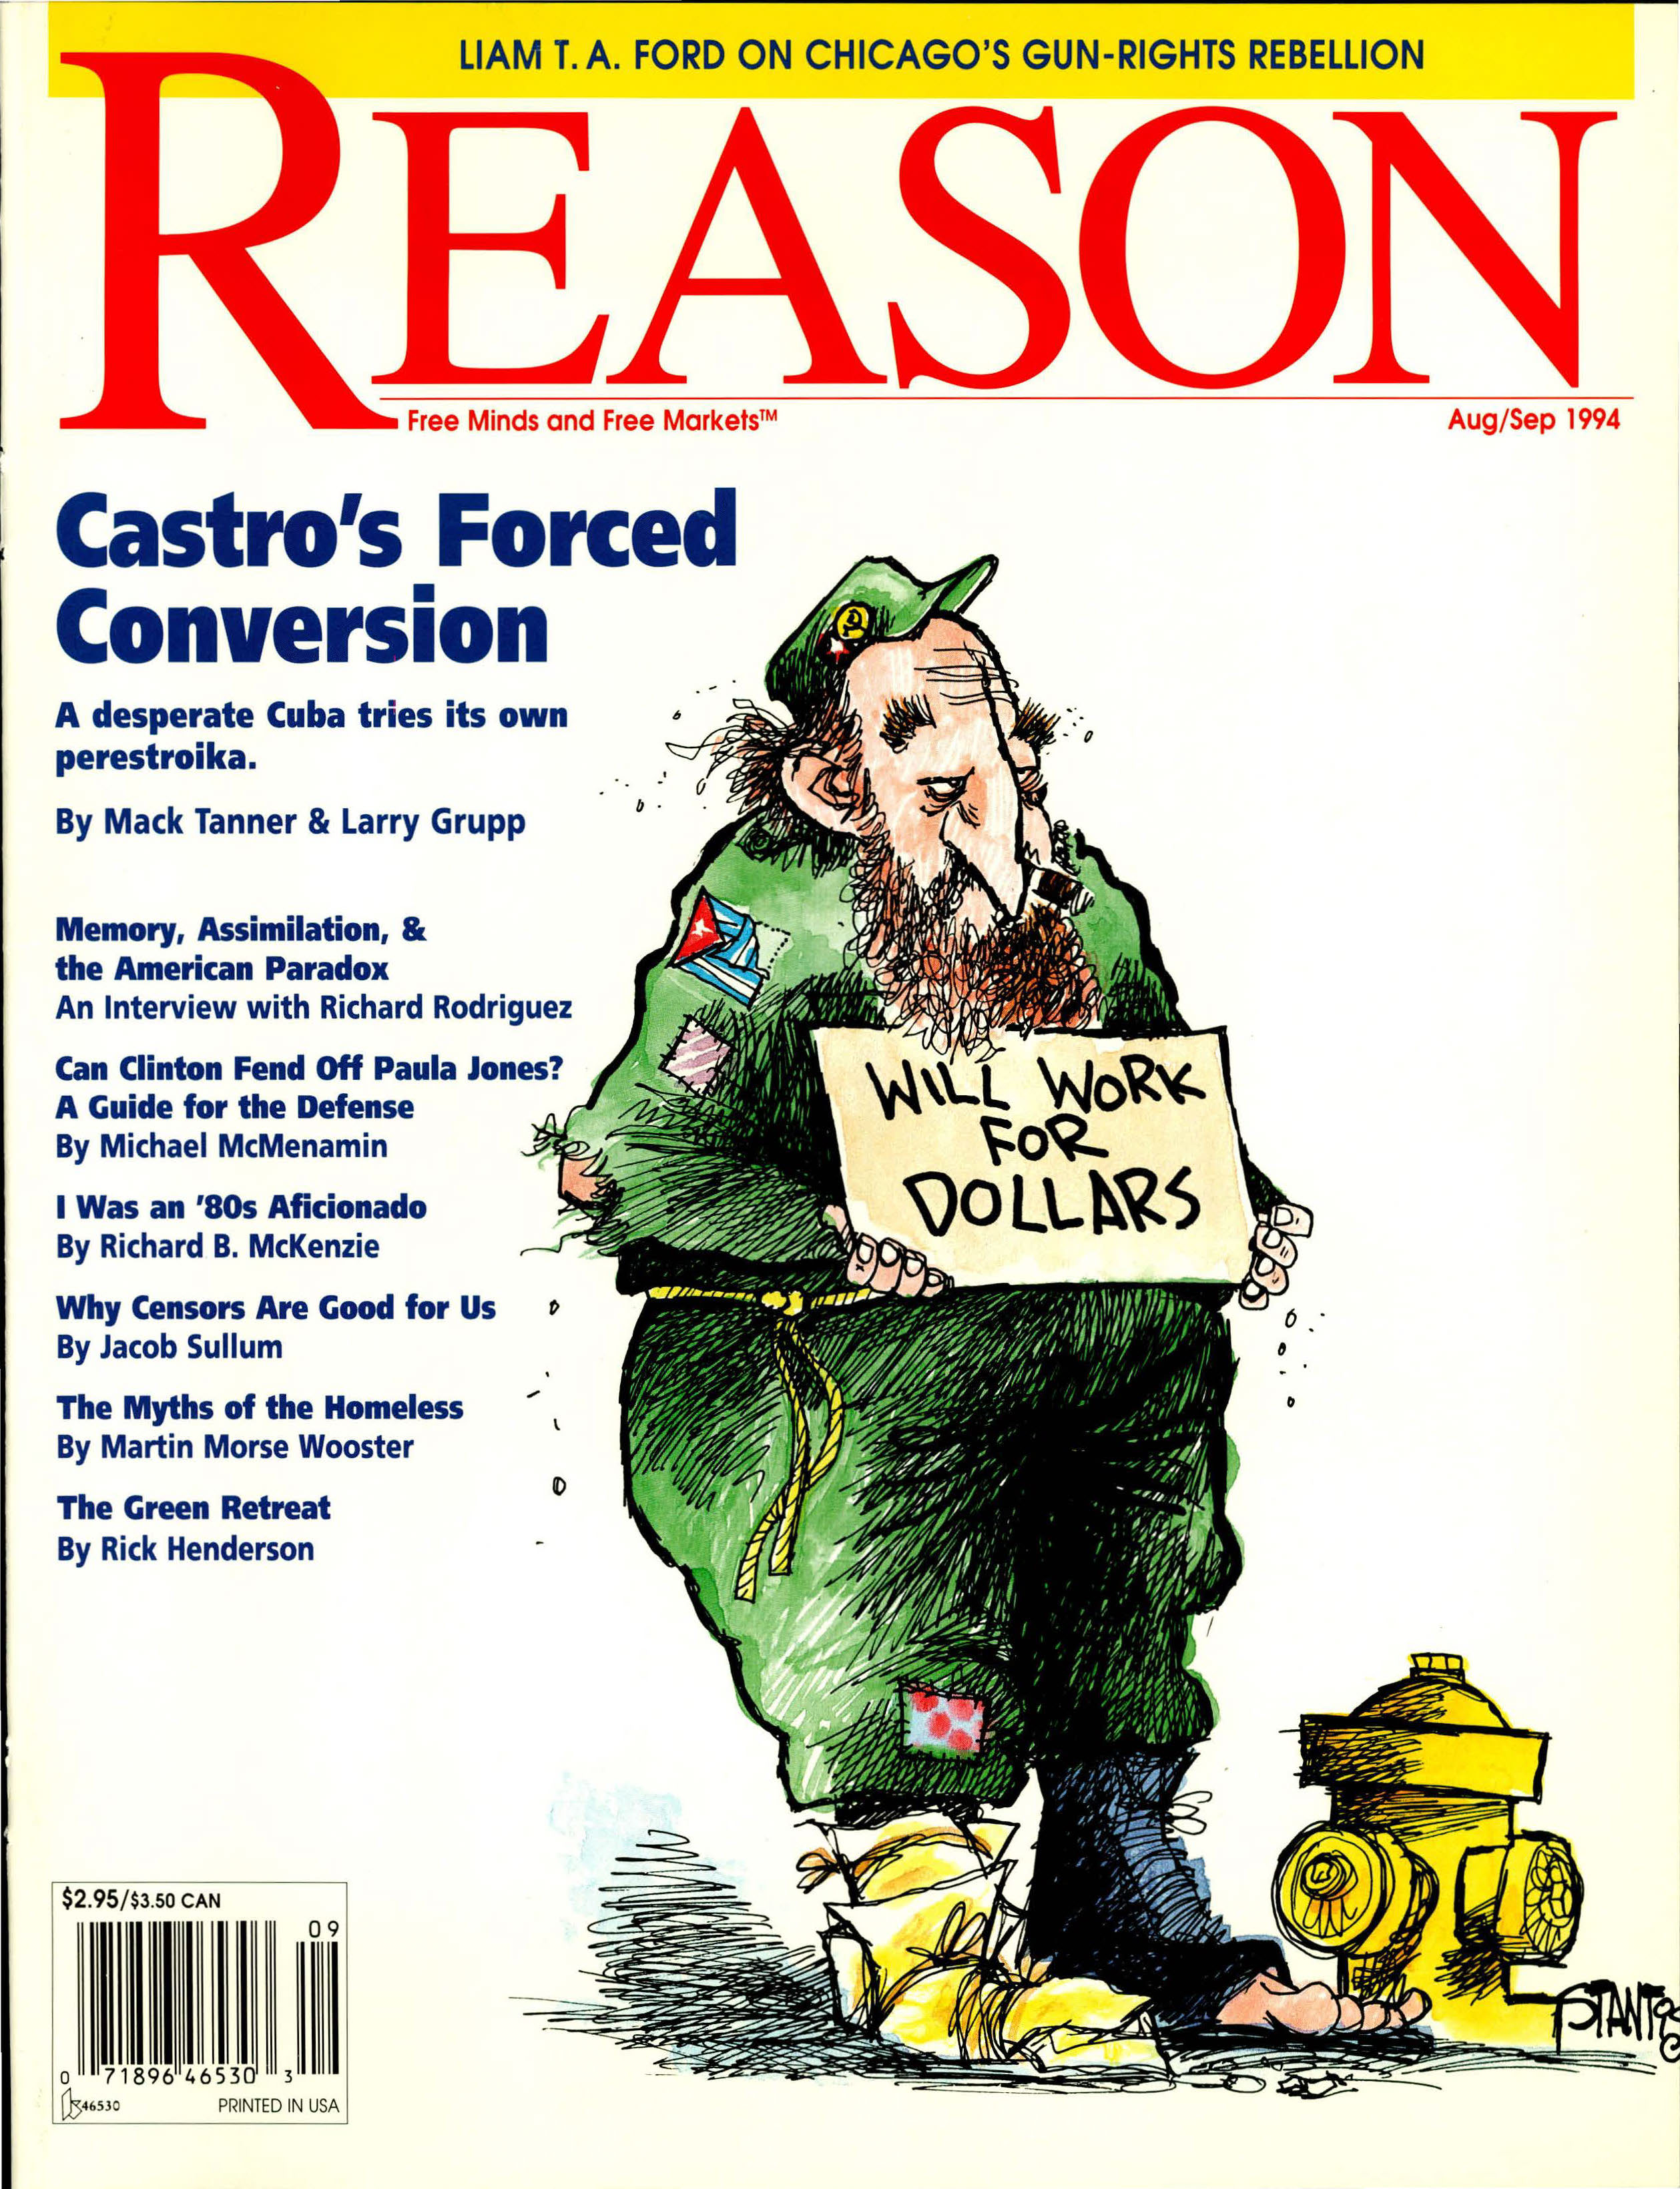 Reason Magazine, August/September 1994 cover image